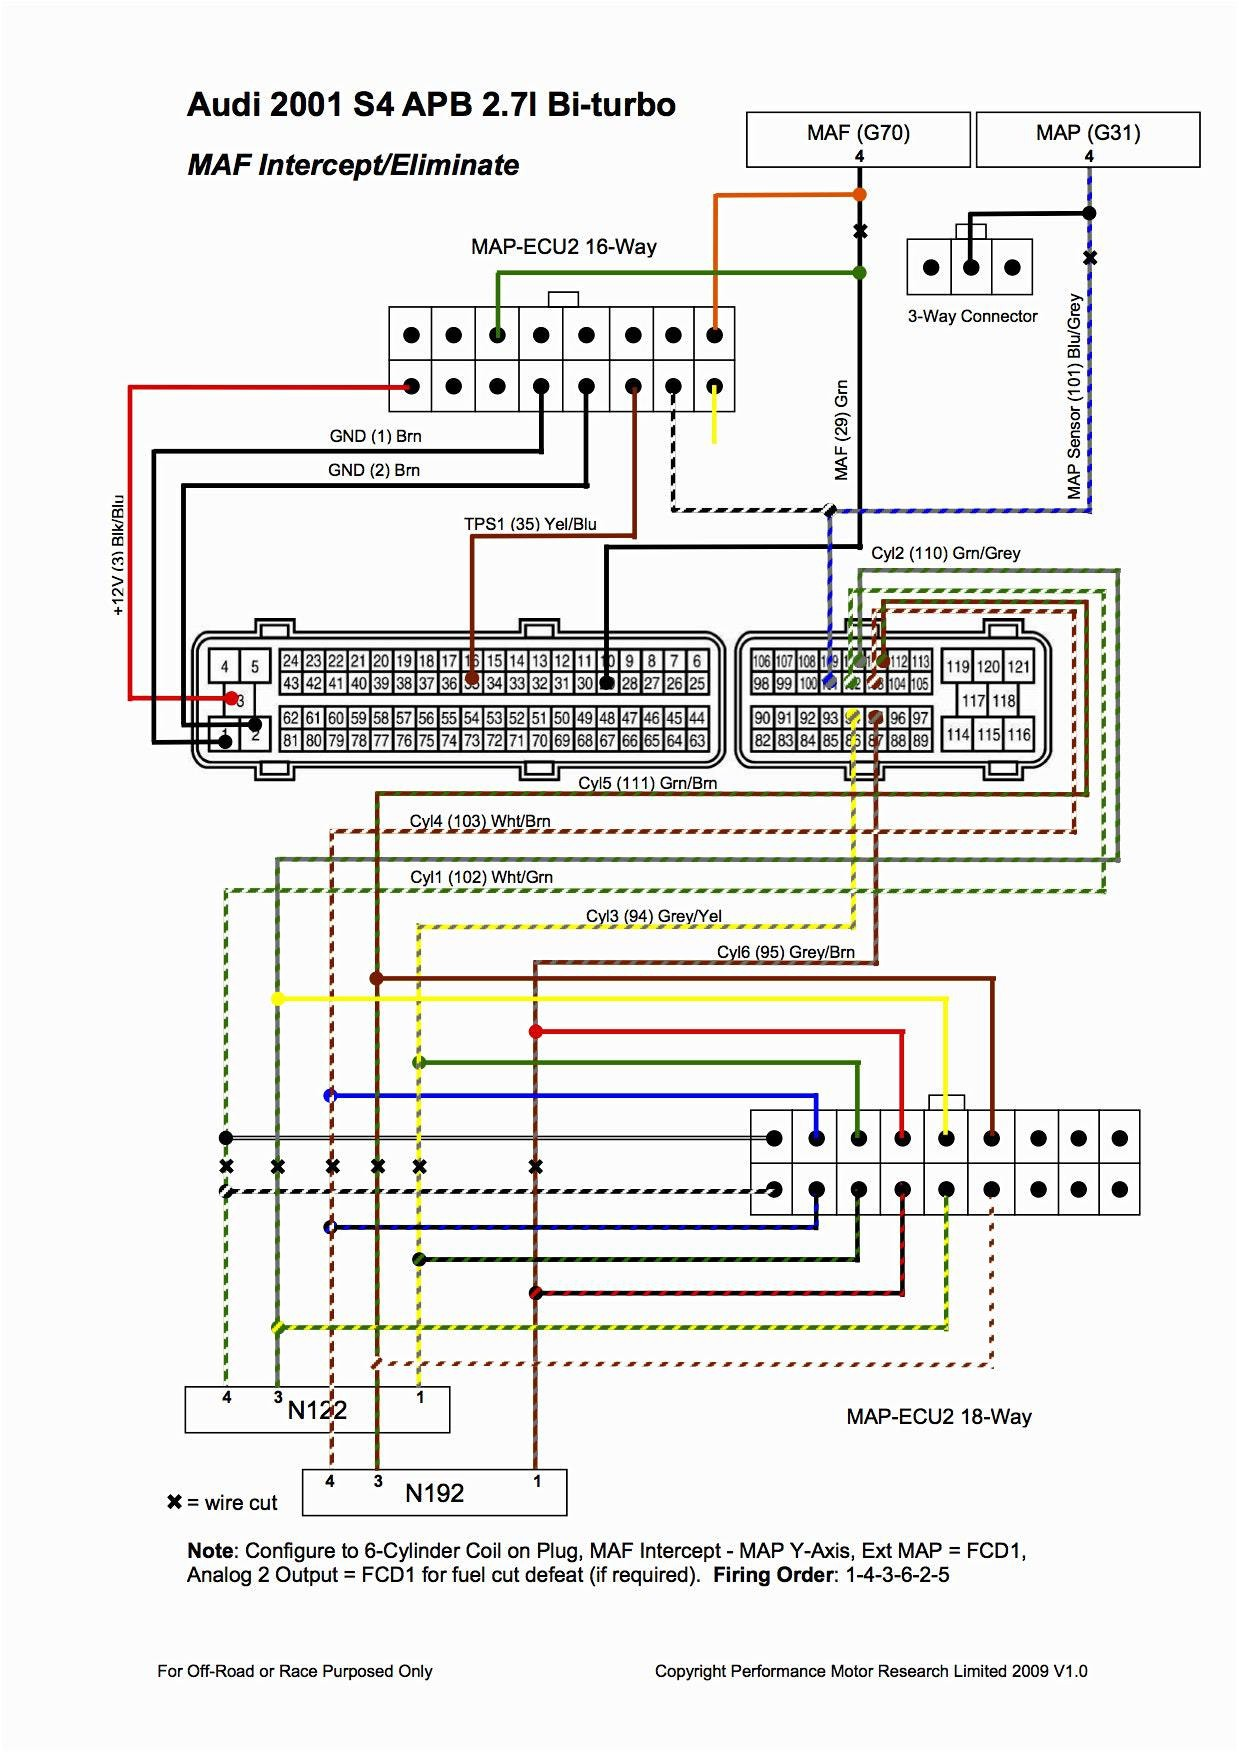 148E9 Genteq Ecm Motor Wiring Diagram | Wiring ResourcesWiring Resources